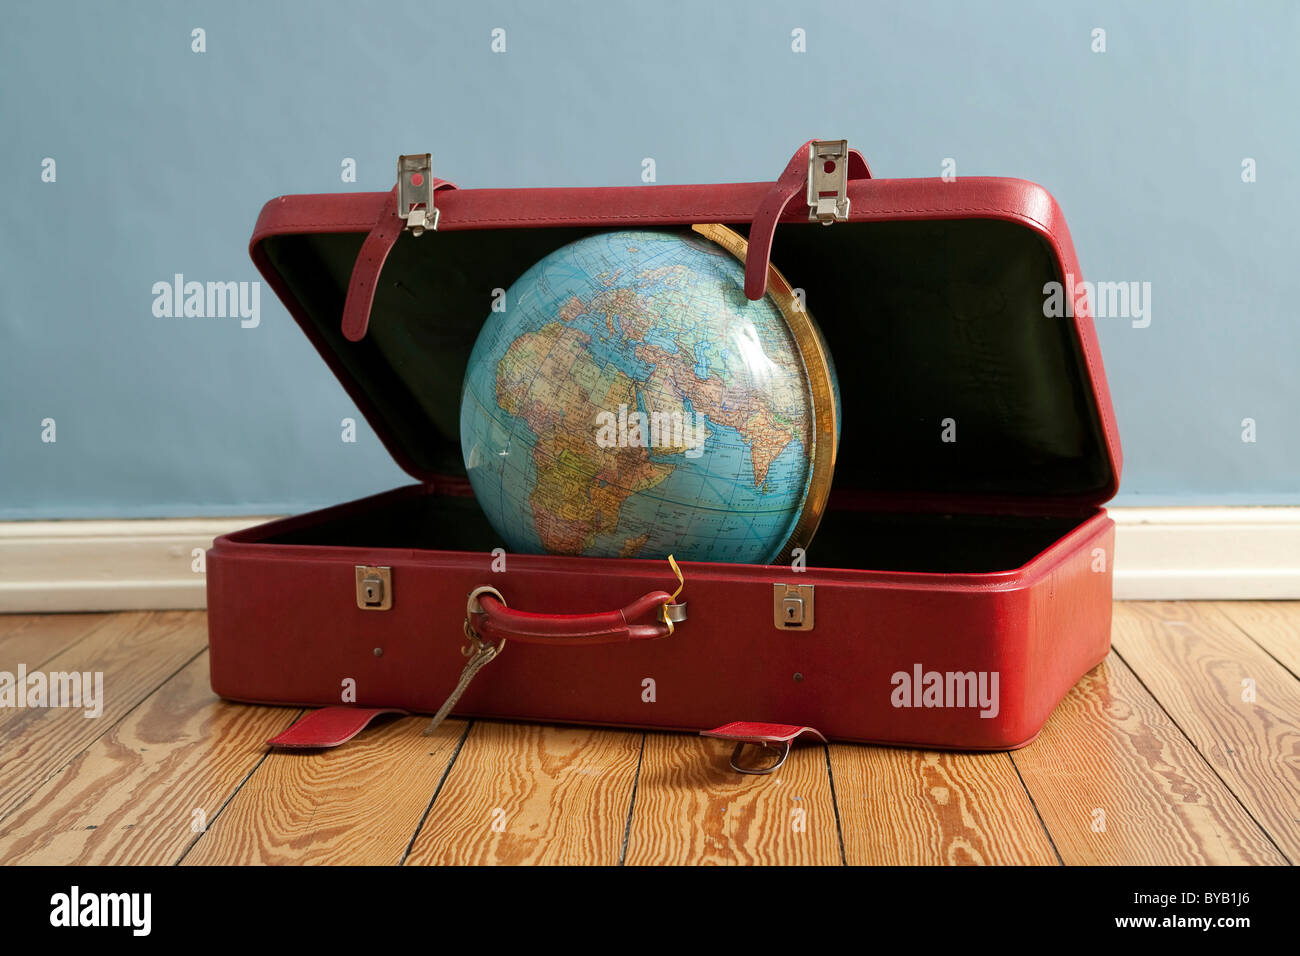 Globe in a suitcase, symbolic image for traveling, vacation, world trip - Stock Image